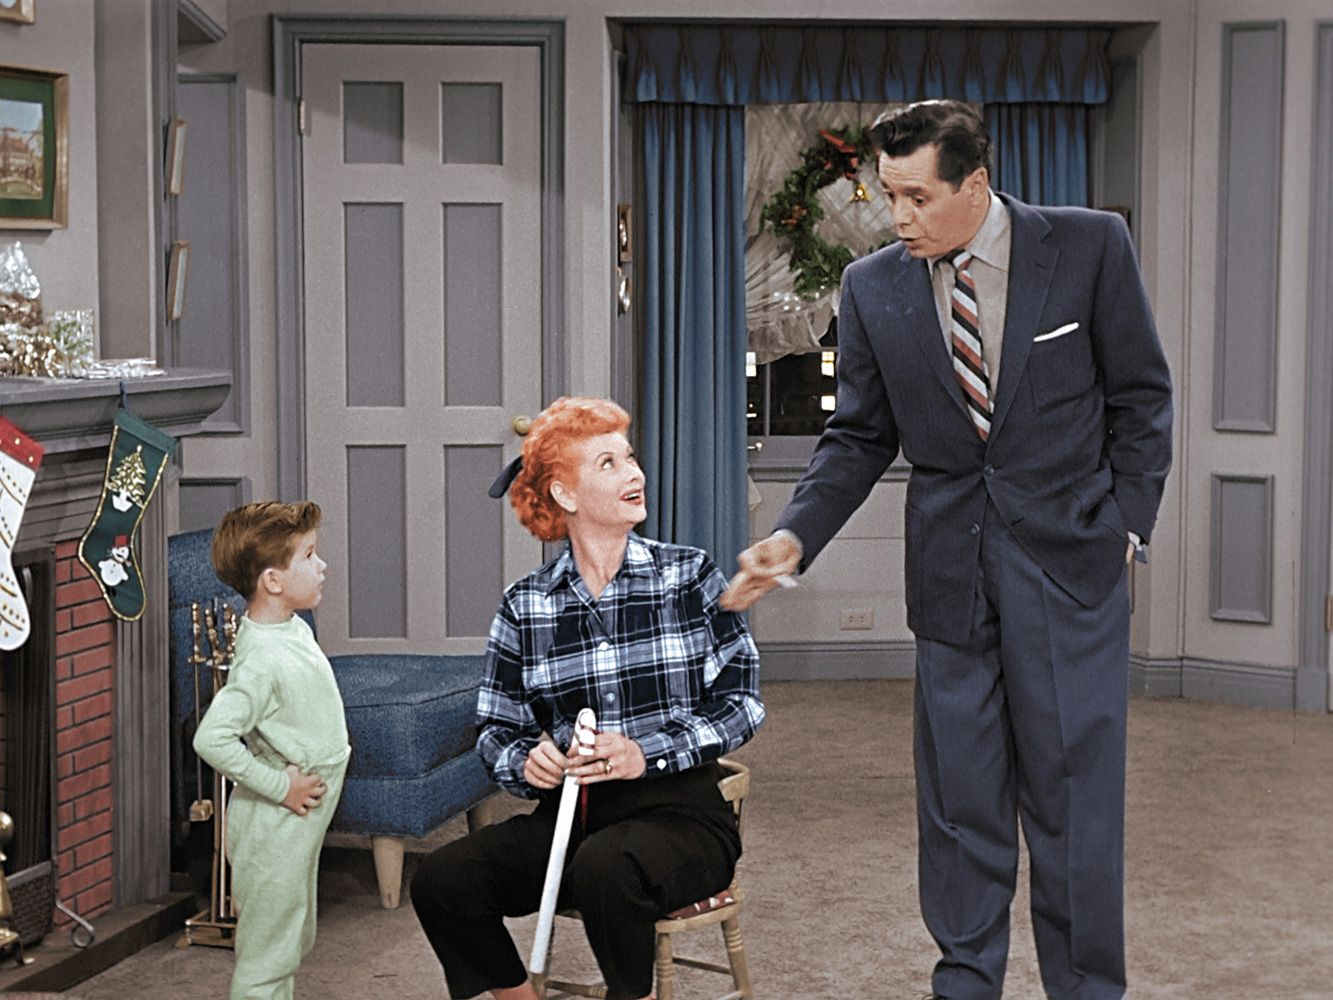 I Love Lucy - Christmas | I Love Lucy | Pinterest | Lucille ball ...